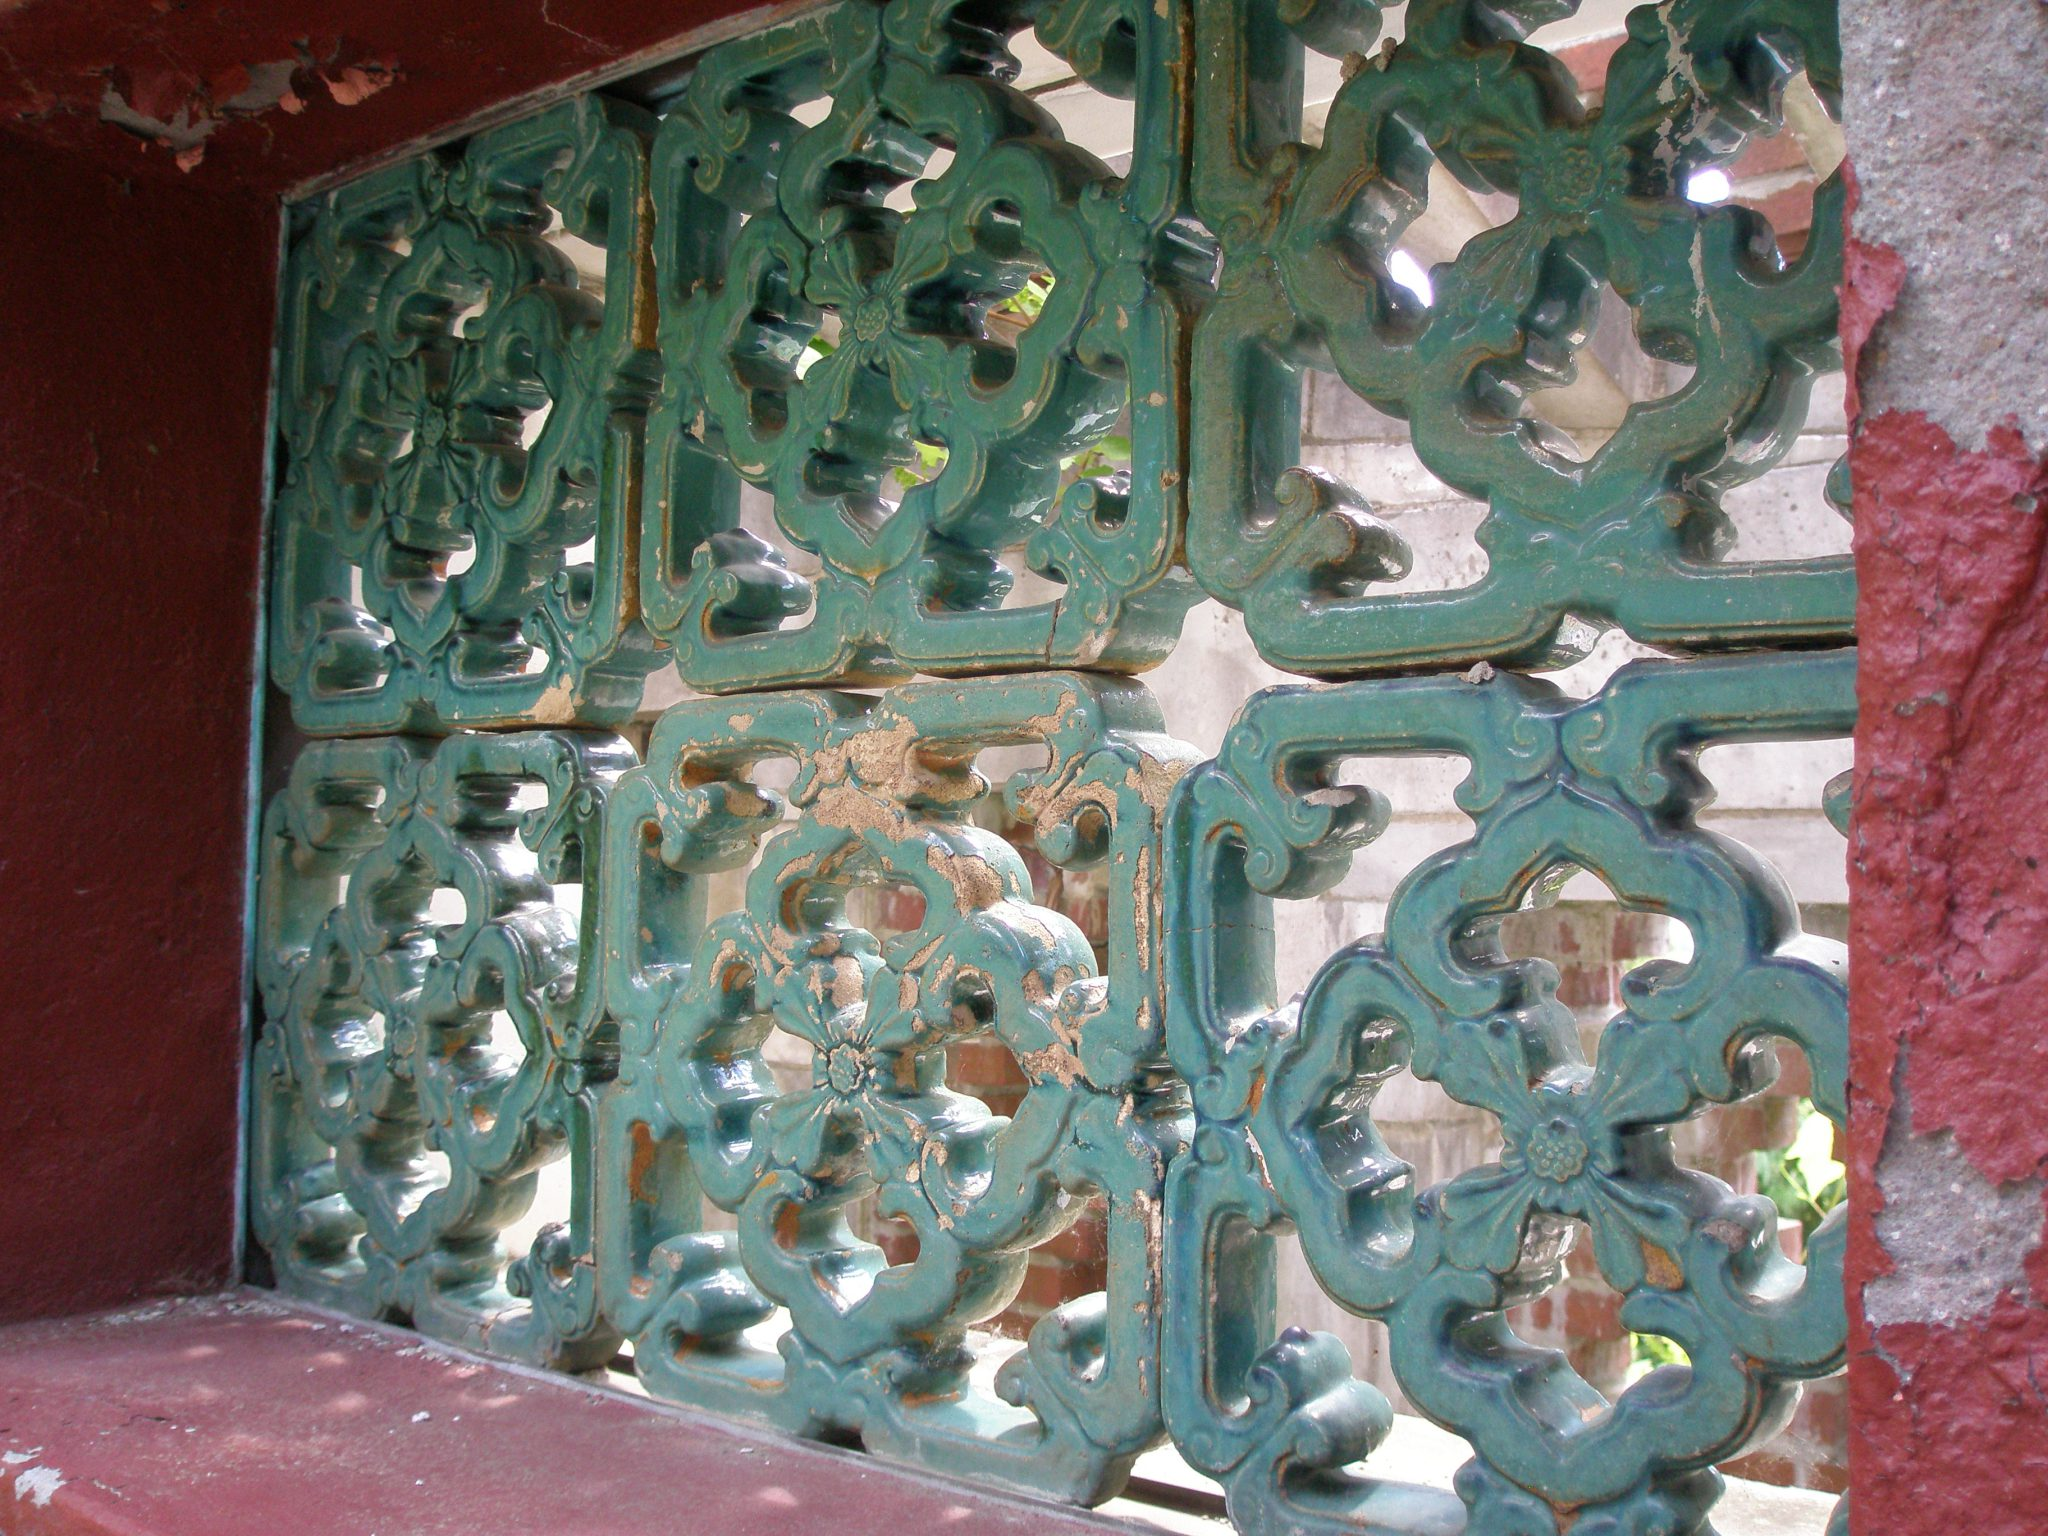 From inside the Chinese Garden, one can peer out toward the Western hills through perforations in the masonry.